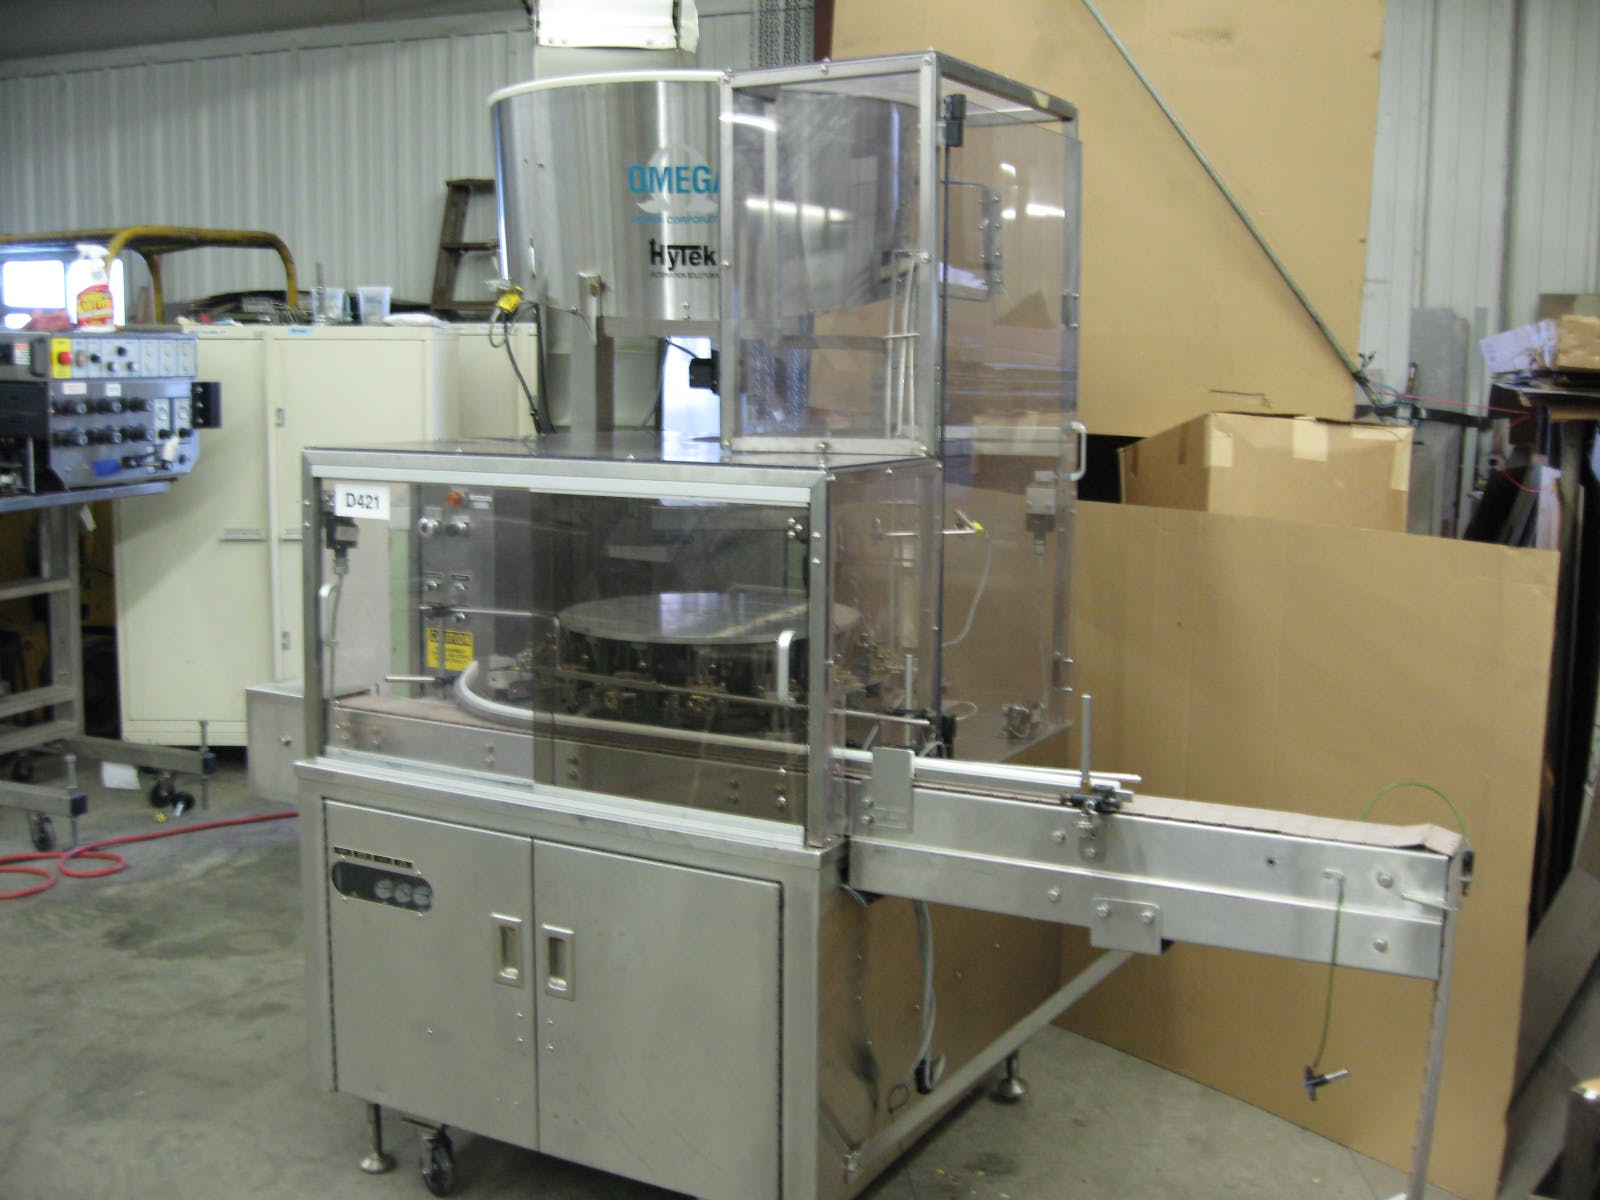 Used Omega 3D-RP2-15 Bottle Unscrambler #1087 Unscrambler sold by HyTek Automation Solutions